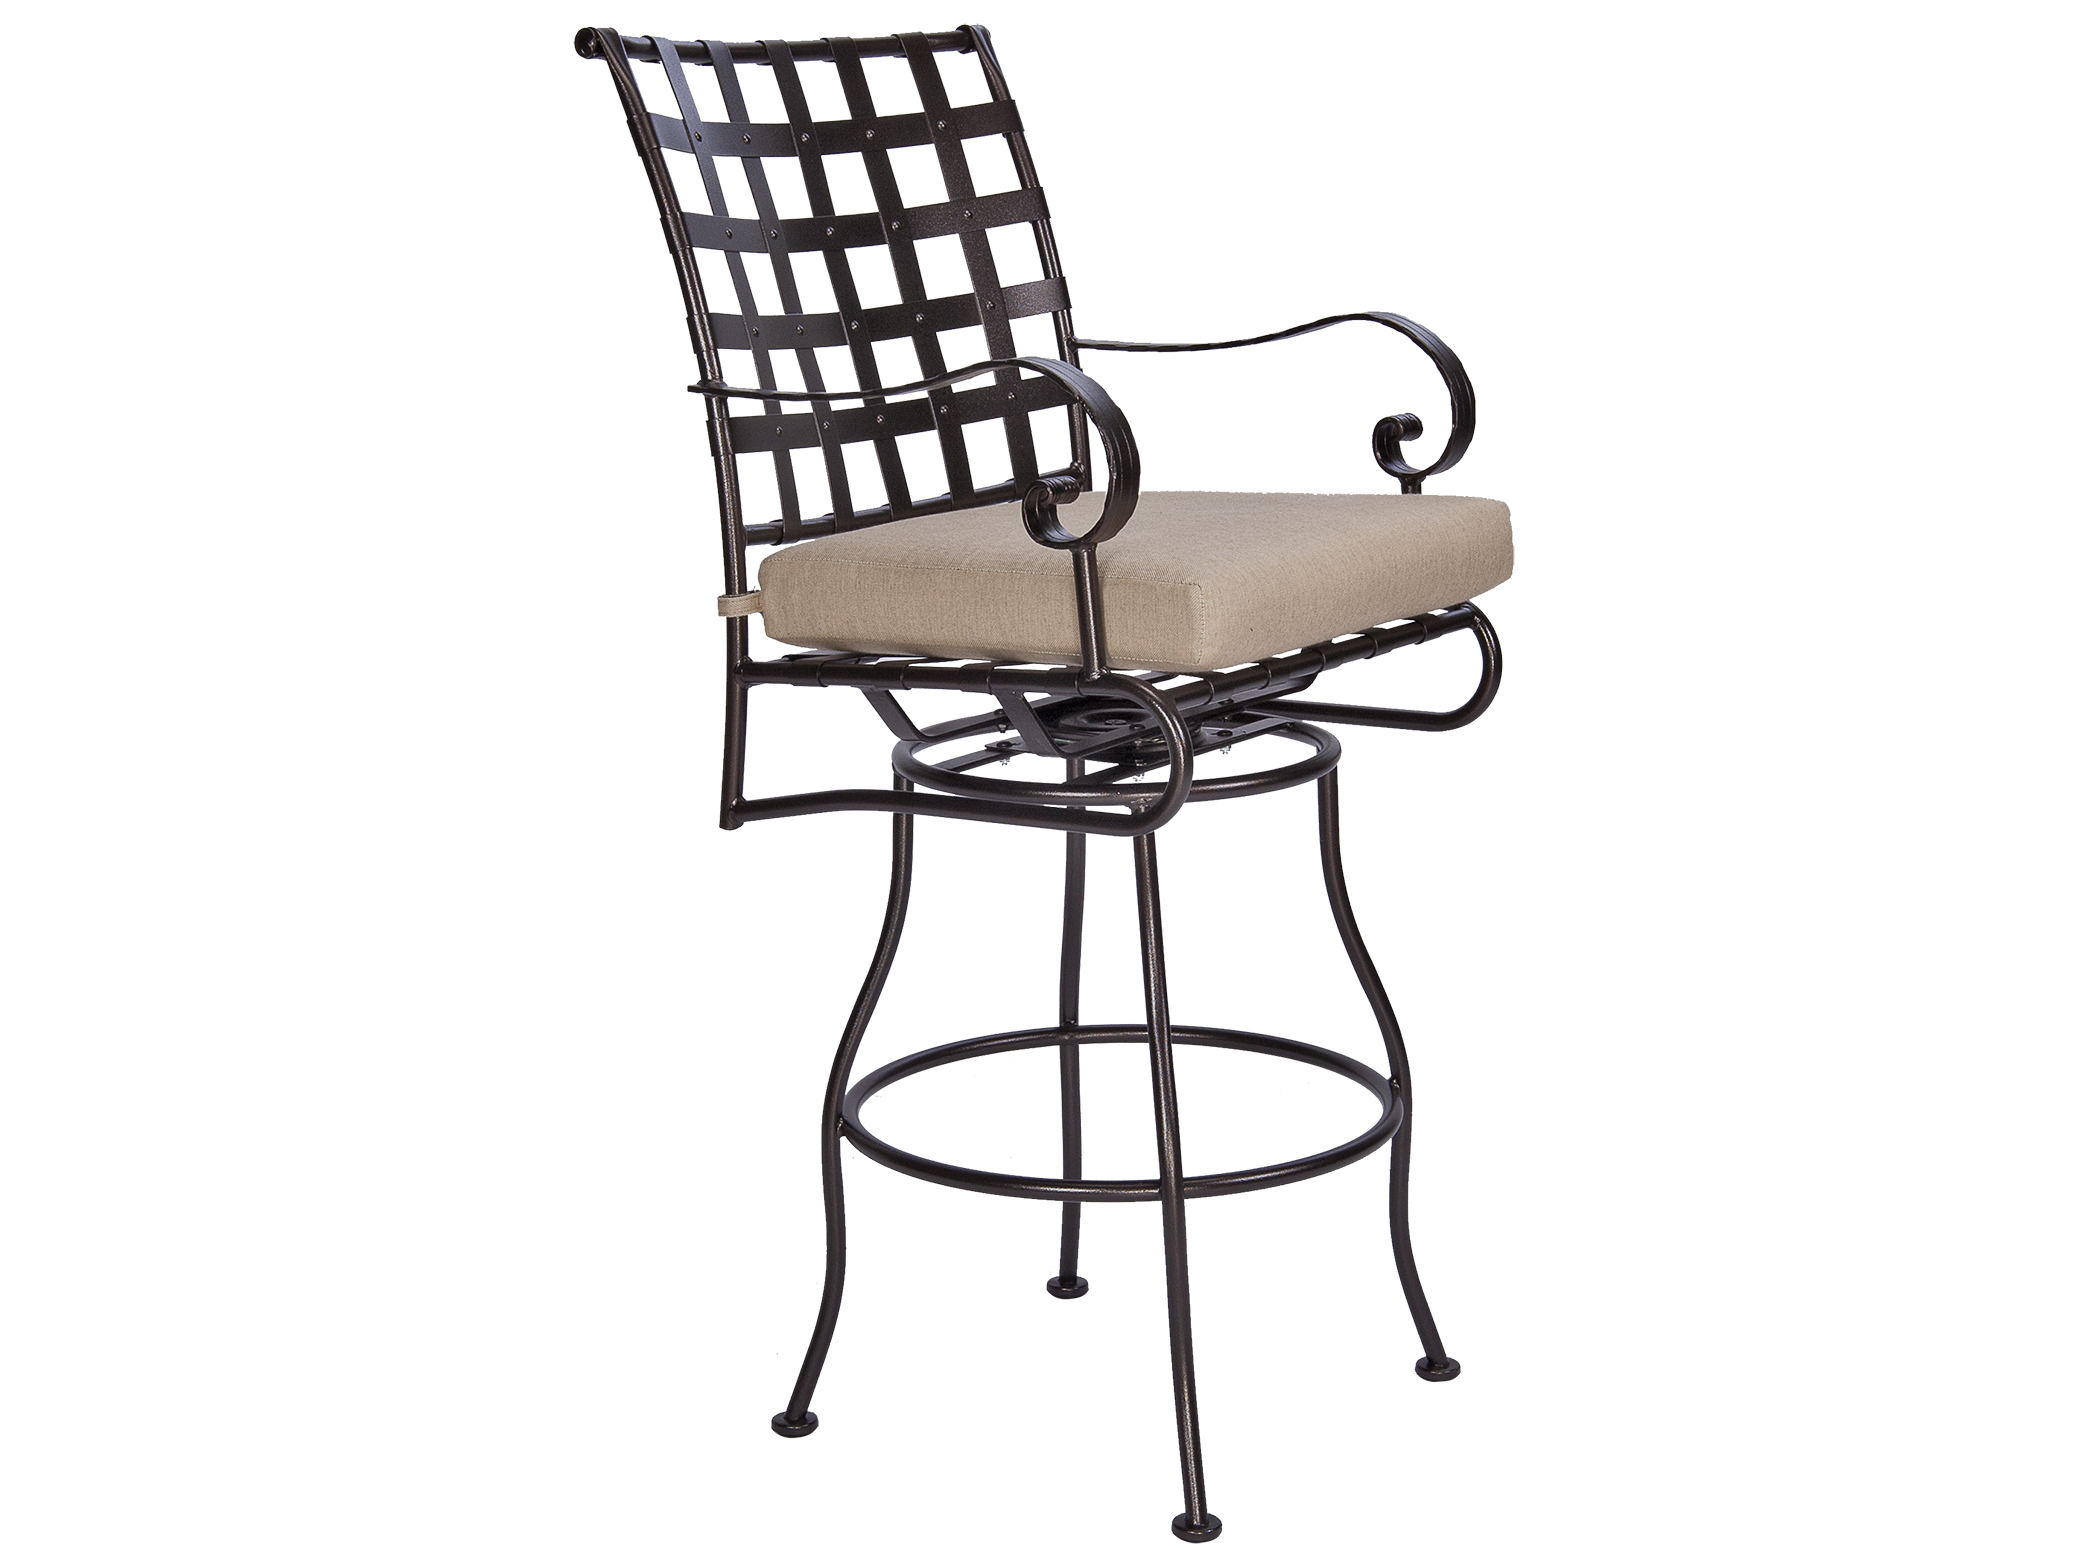 OW Lee Classico Wide Arms Wrought Iron Swivel Bar Stool  : OW953SBSW2zm from www.patioliving.com size 2086 x 1565 jpeg 121kB